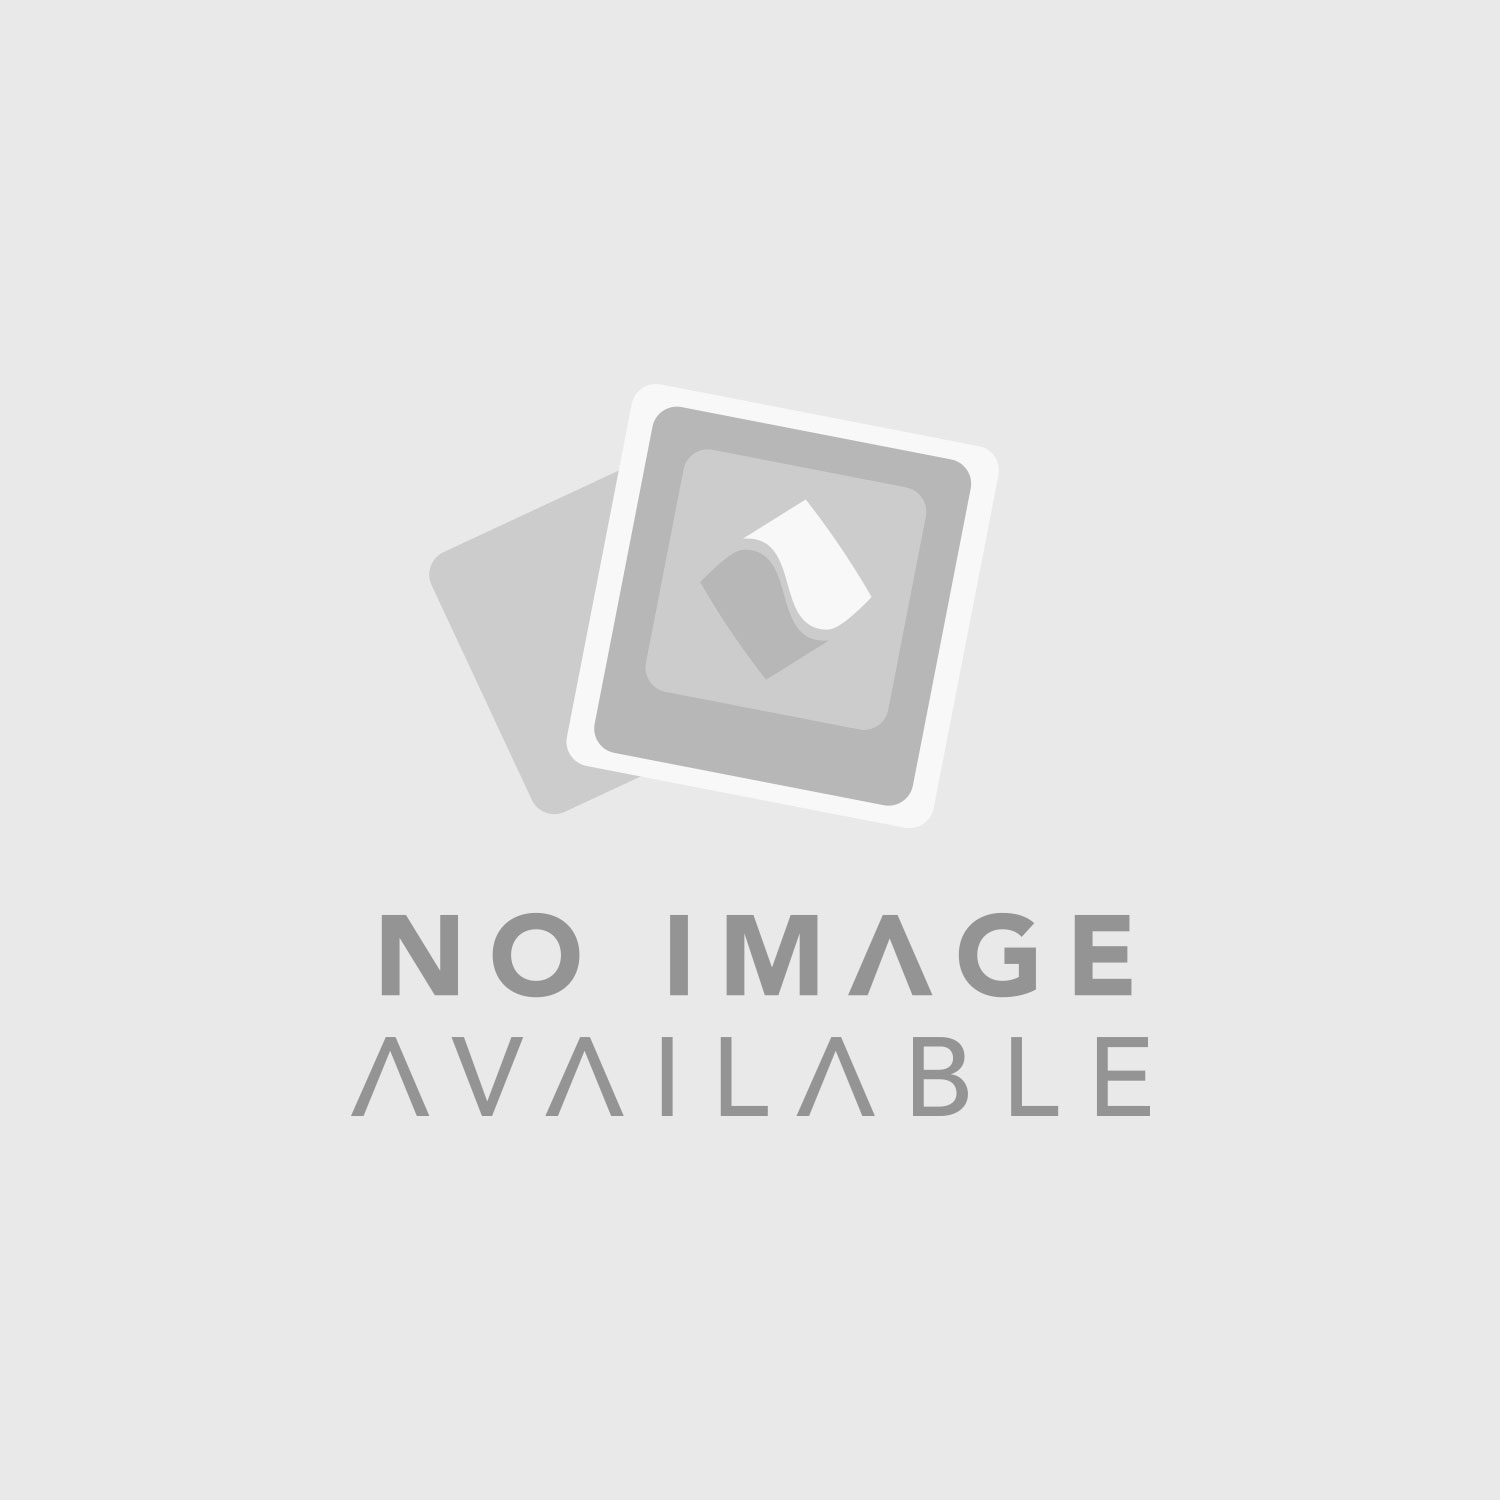 Atlas Sound TSD-RL21 Two Channel Mixer